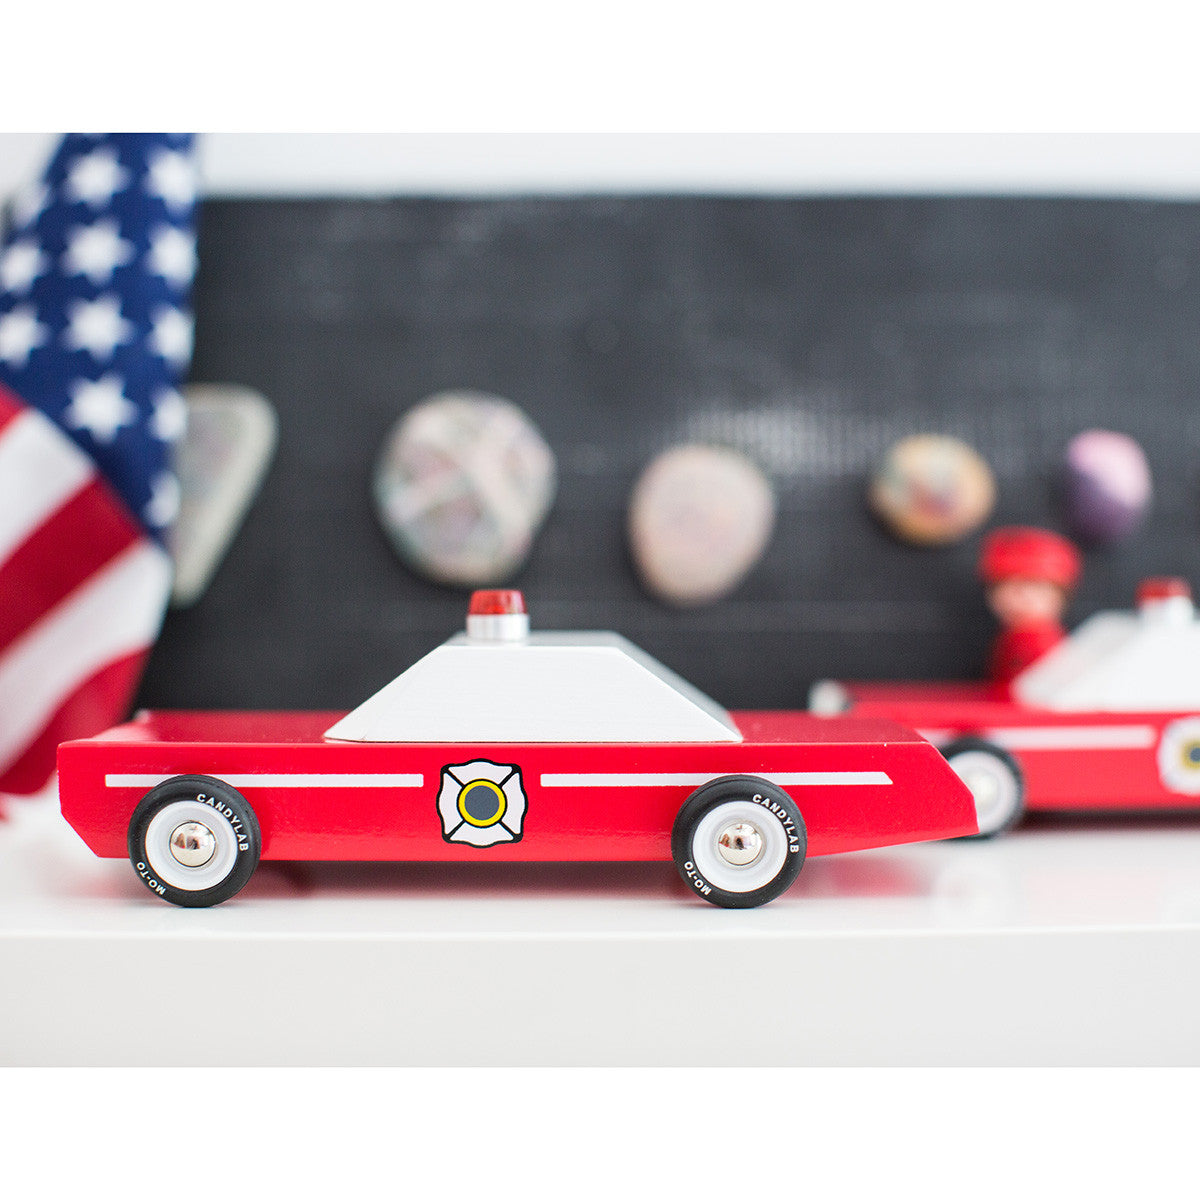 Candylab Firechief Toy Car